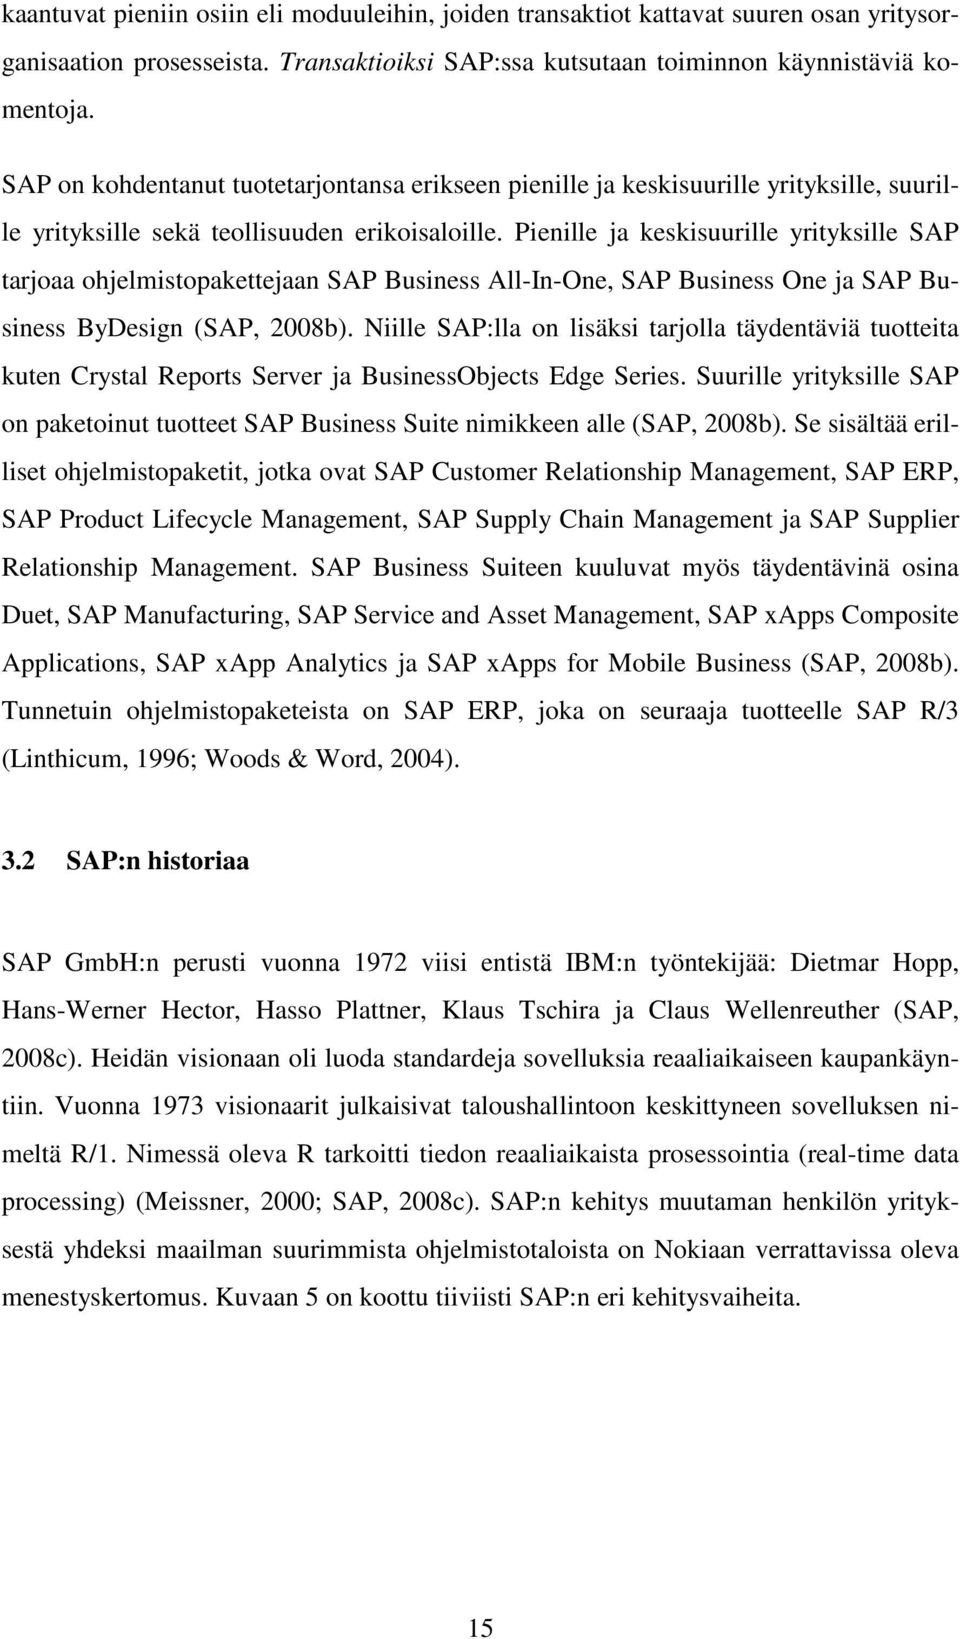 Pienille ja keskisuurille yrityksille SAP tarjoaa ohjelmistopakettejaan SAP Business All-In-One, SAP Business One ja SAP Business ByDesign (SAP, 2008b).